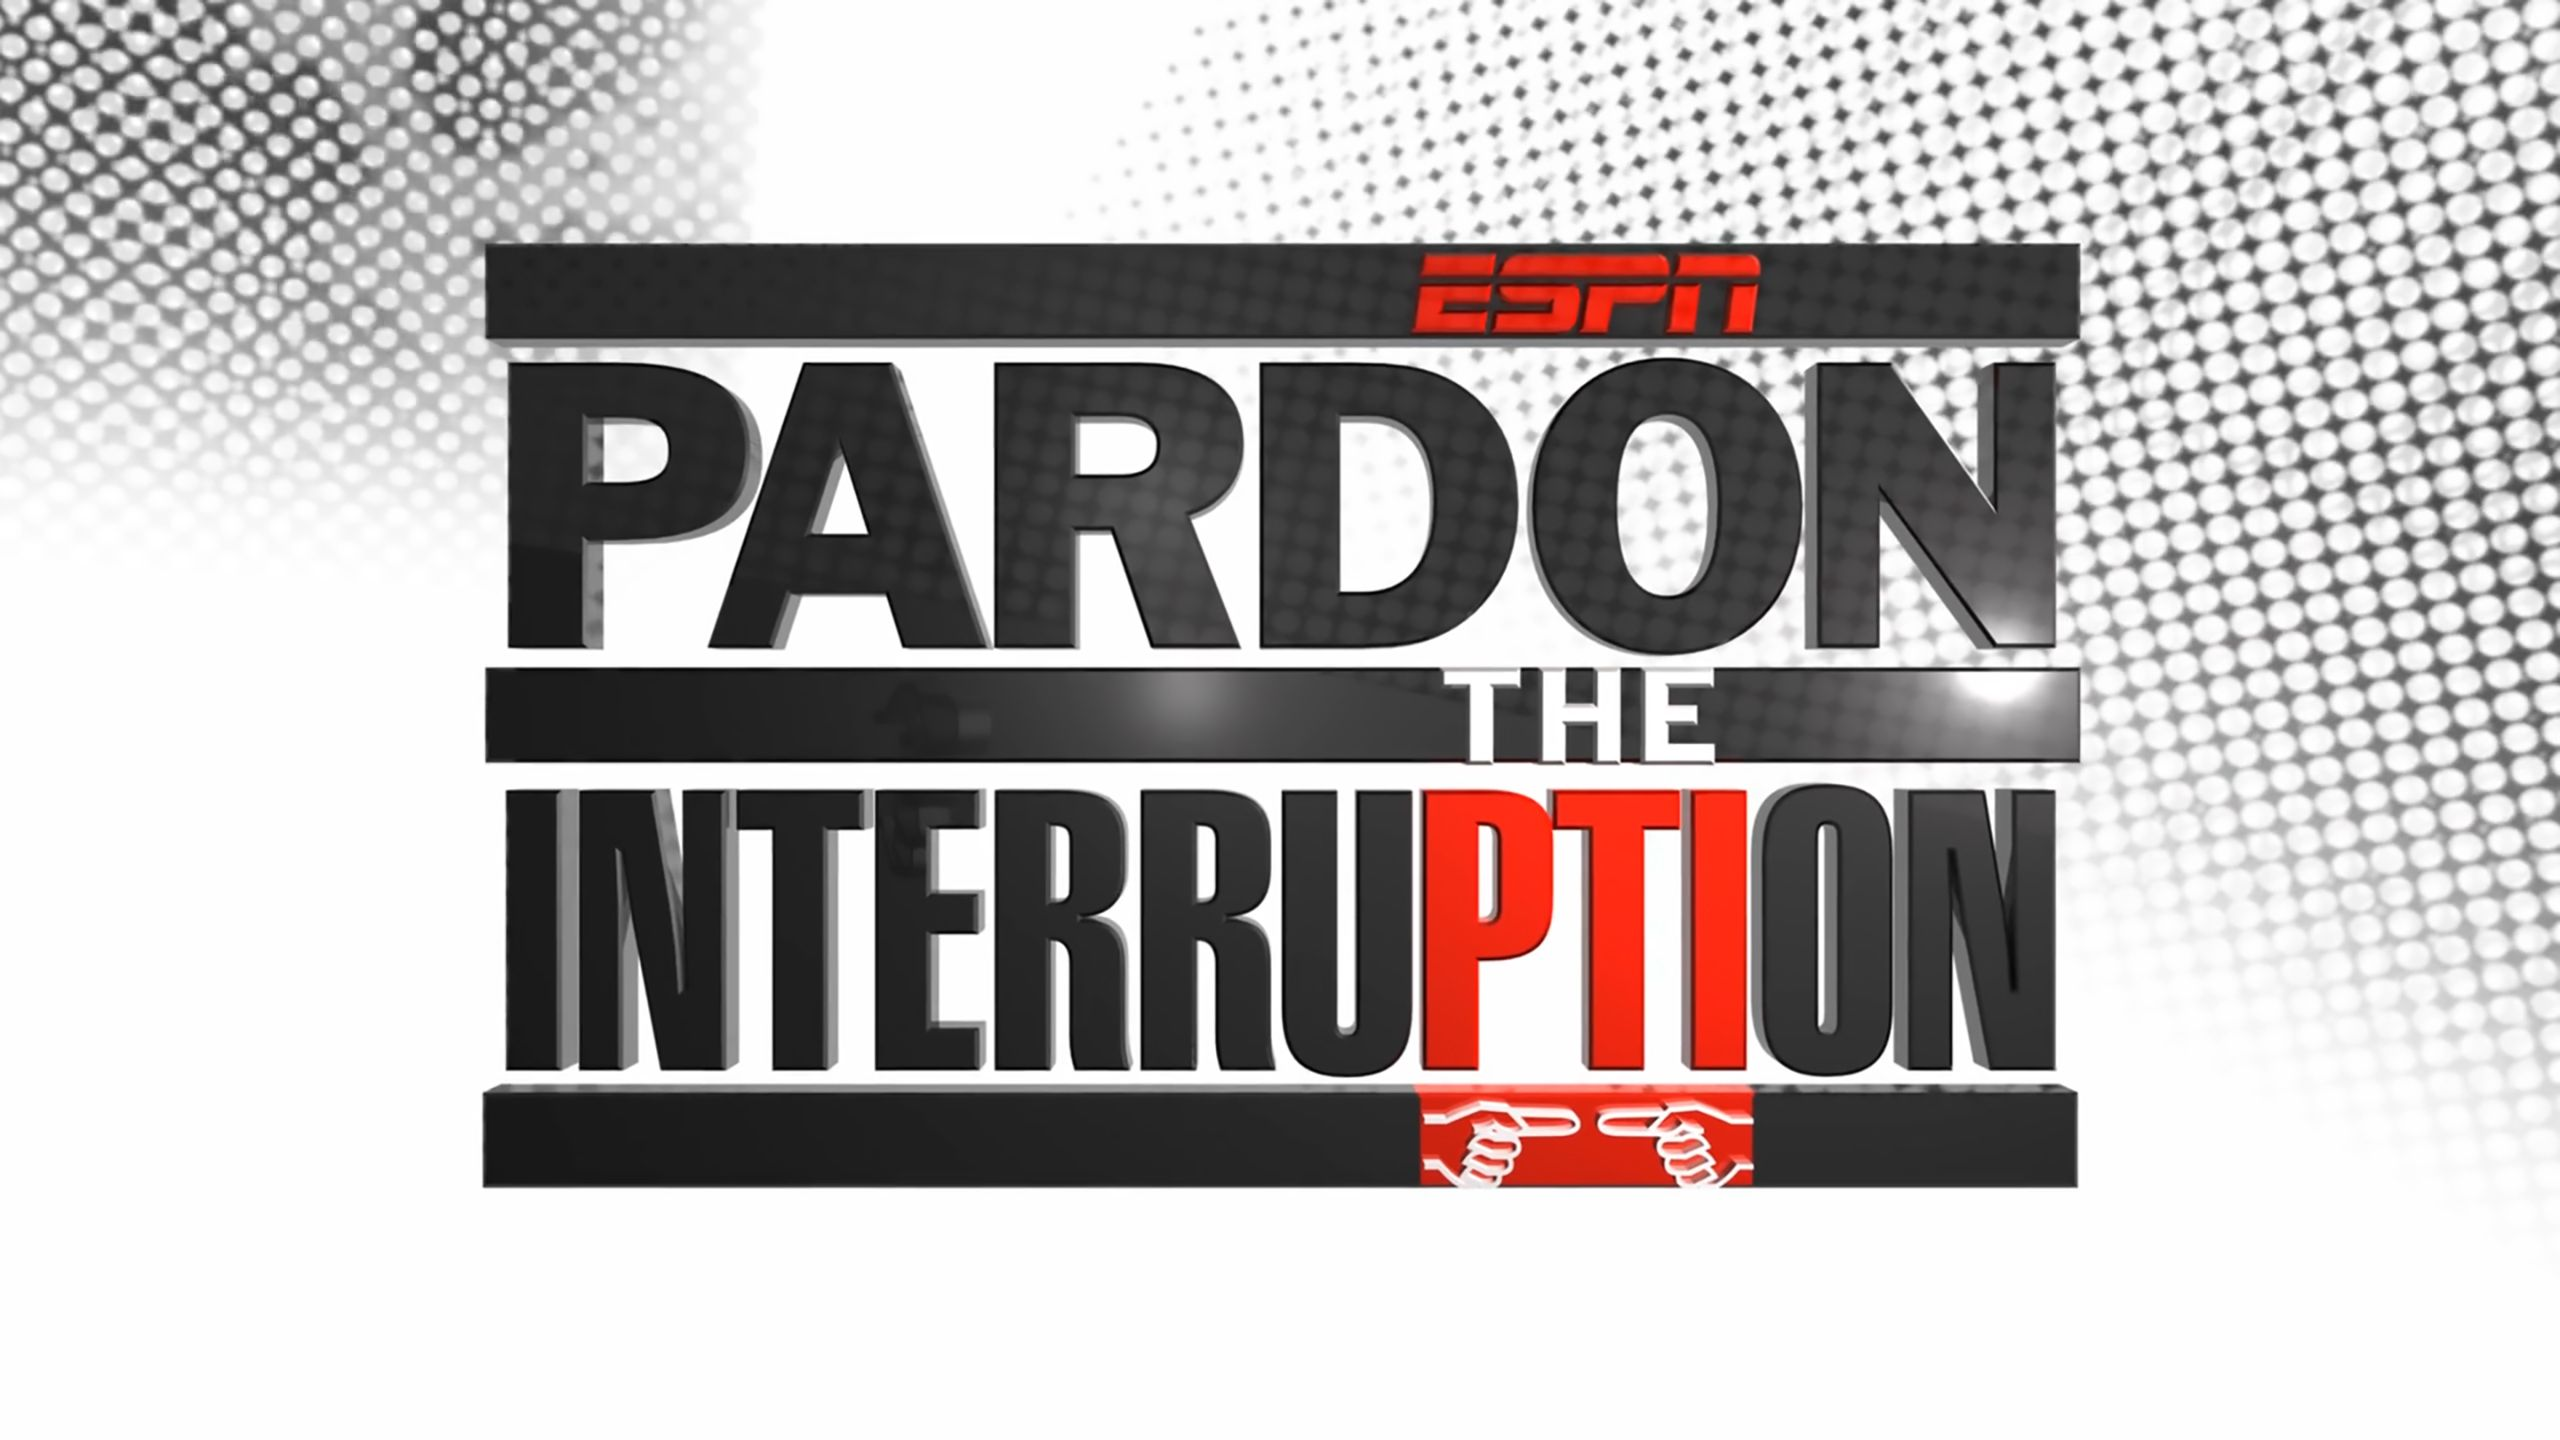 Mon, 7/16 - Pardon The Interruption